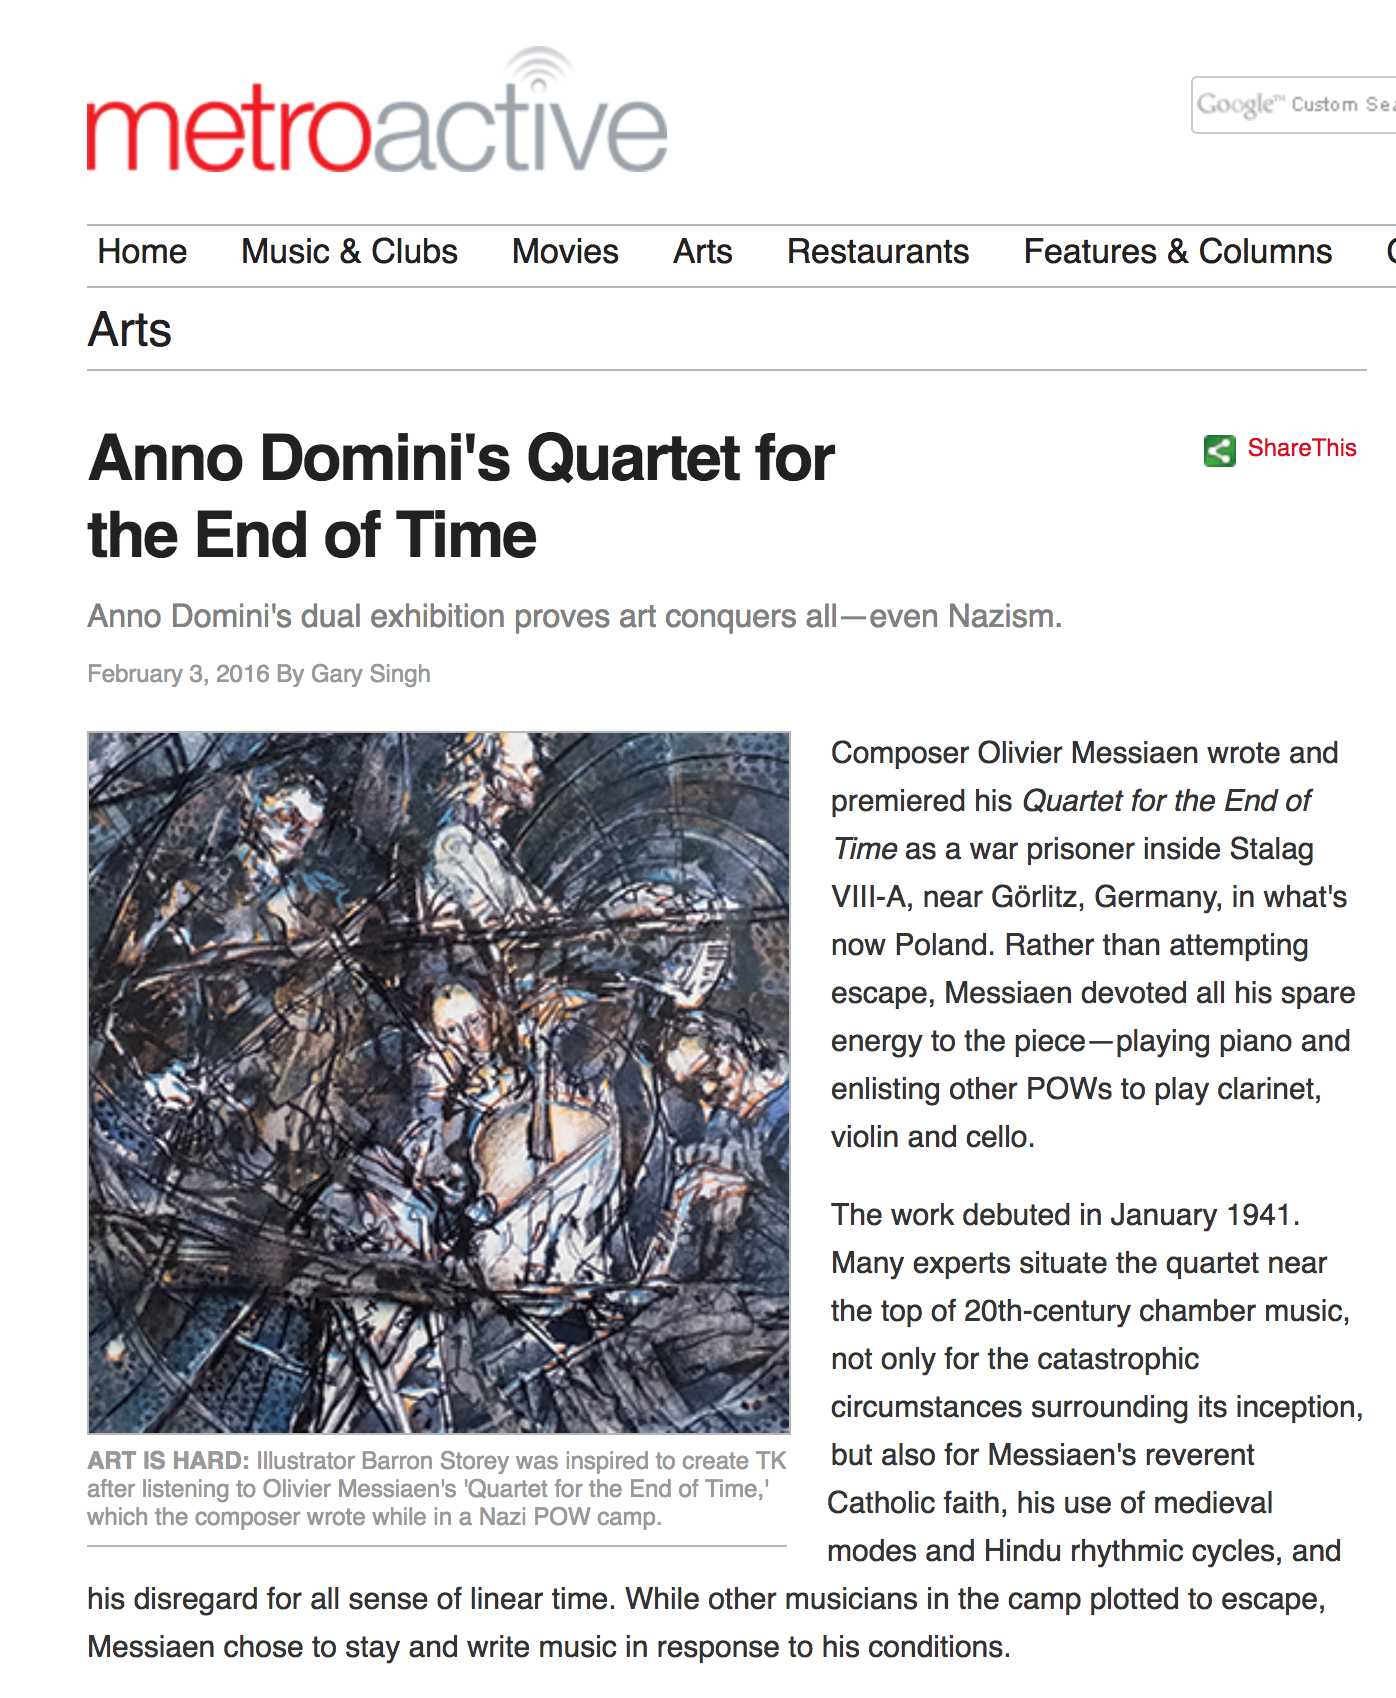 Article on Cellista's dual exhibit with Barron Storey by Gary Singh